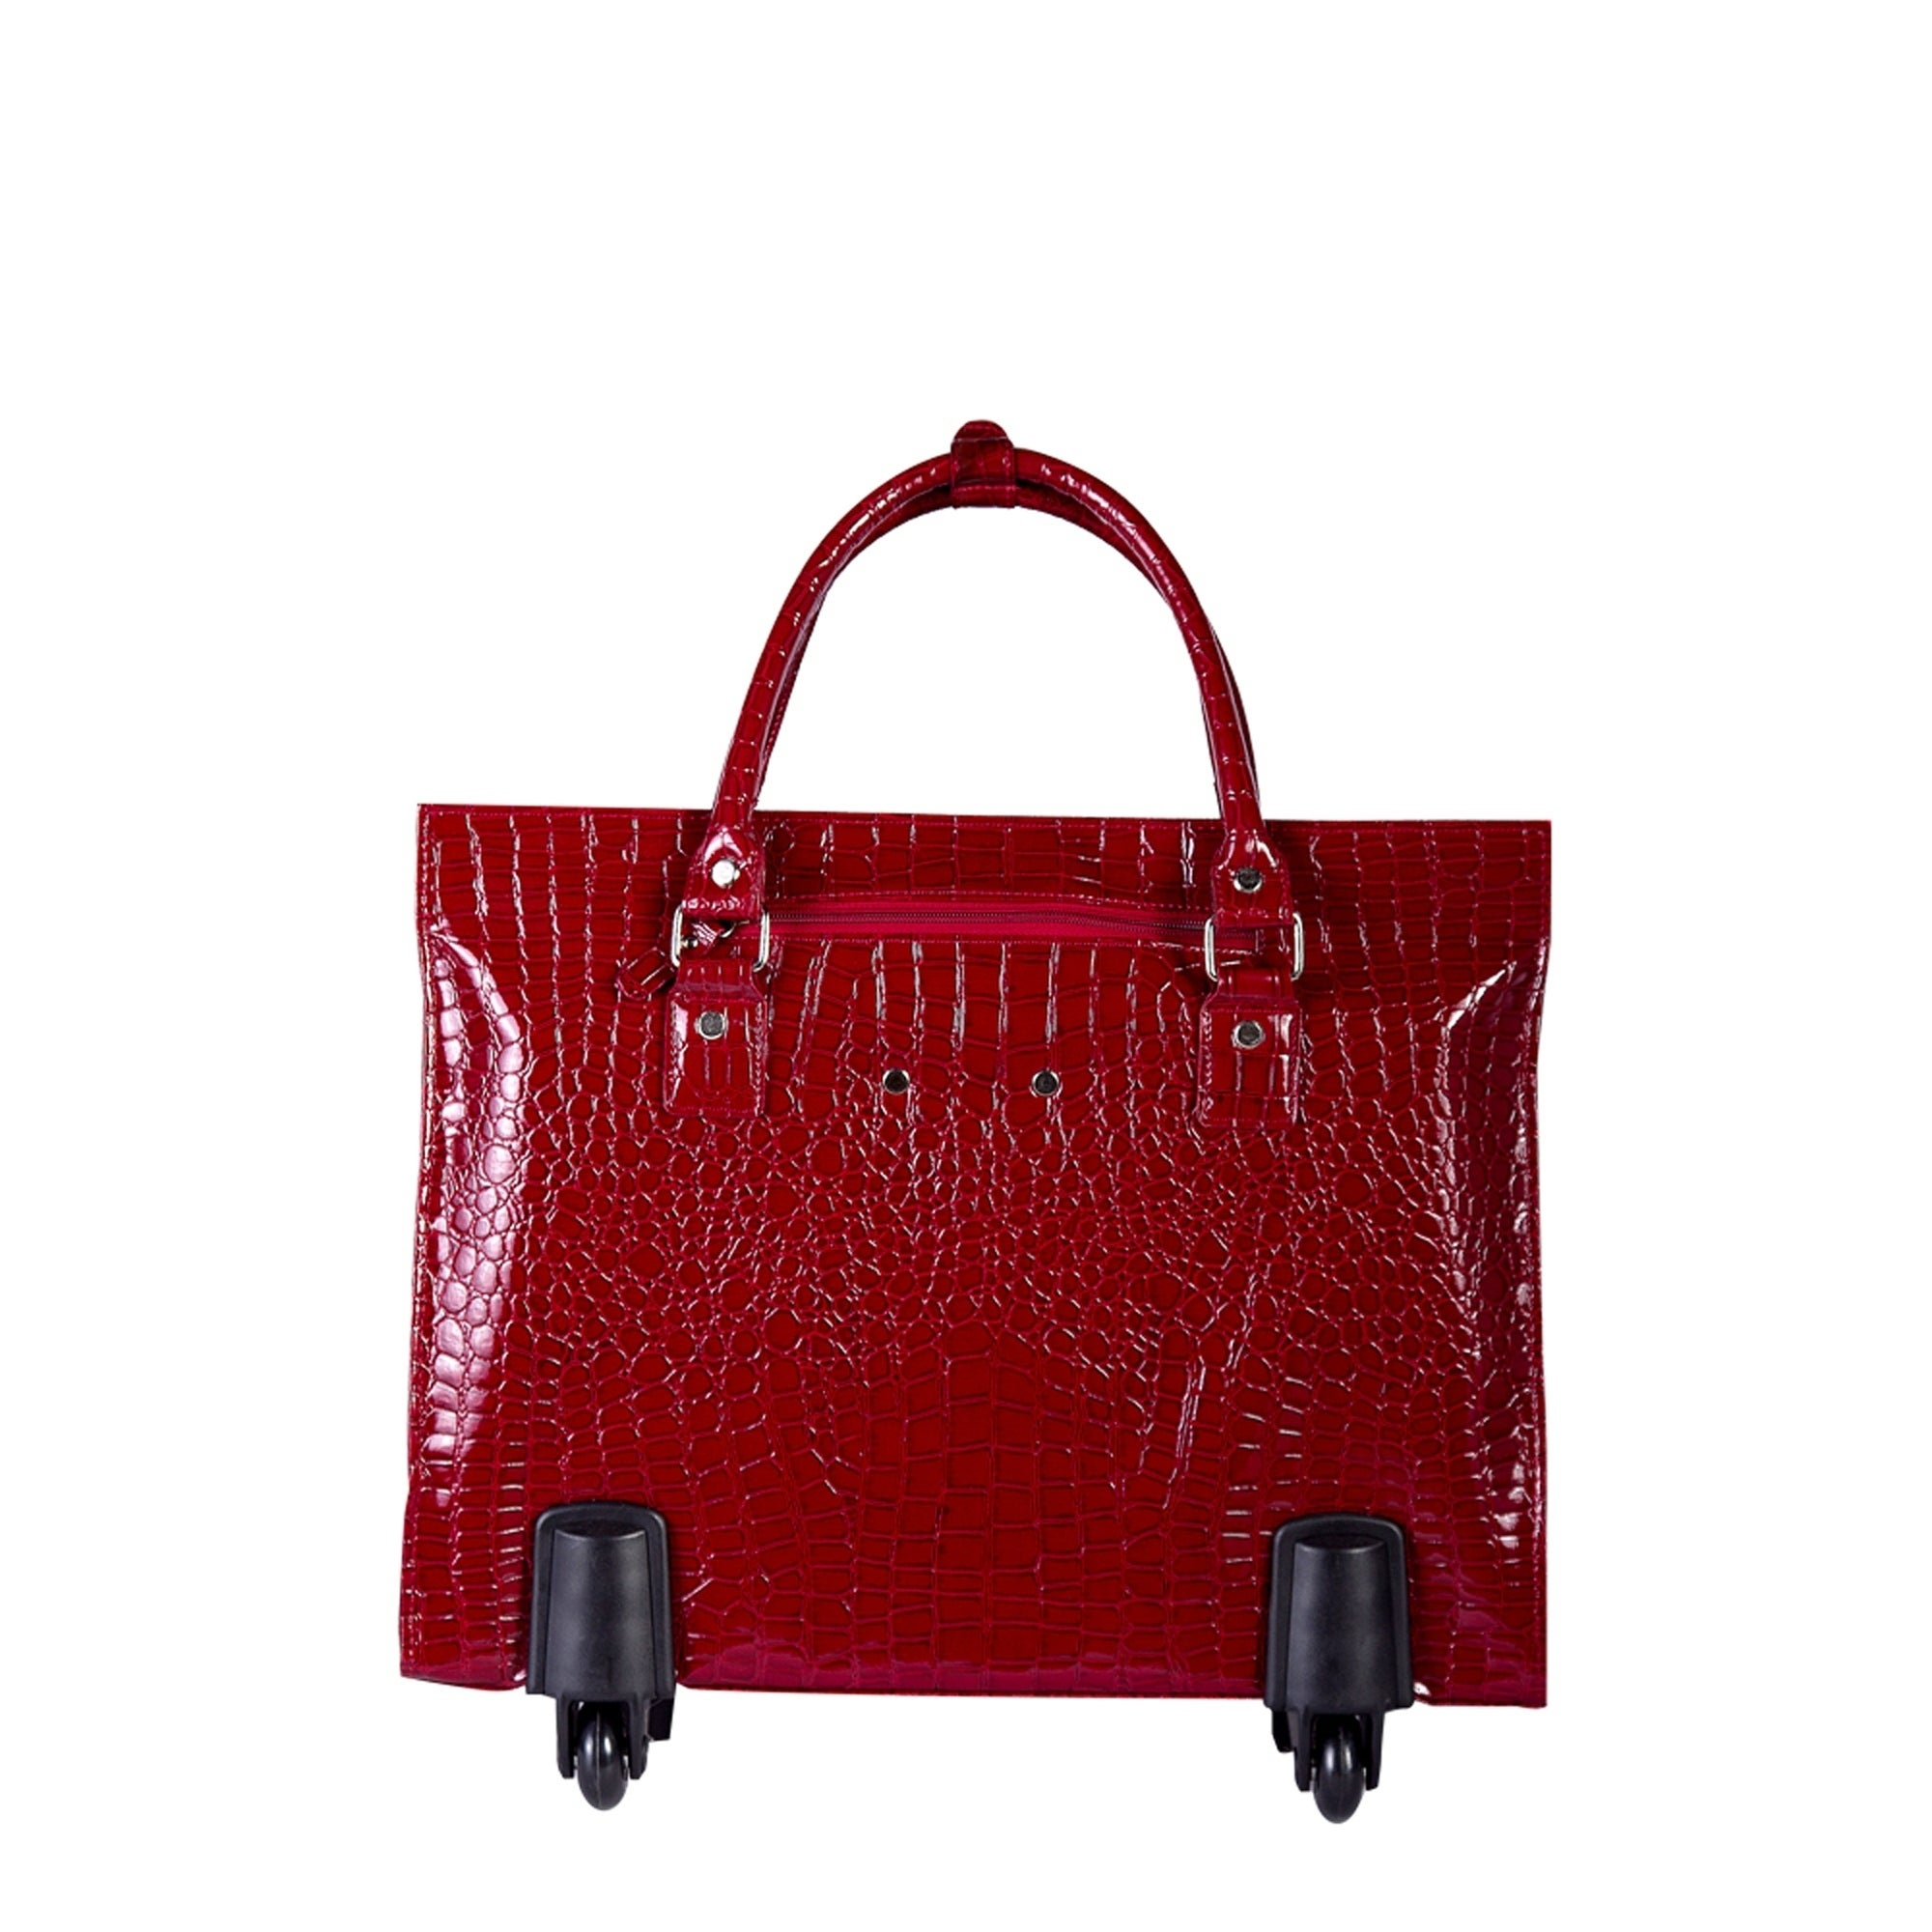 088138b8912 Shop Bugatti Ladies Bag on Wheels in Red - Free Shipping Today ...